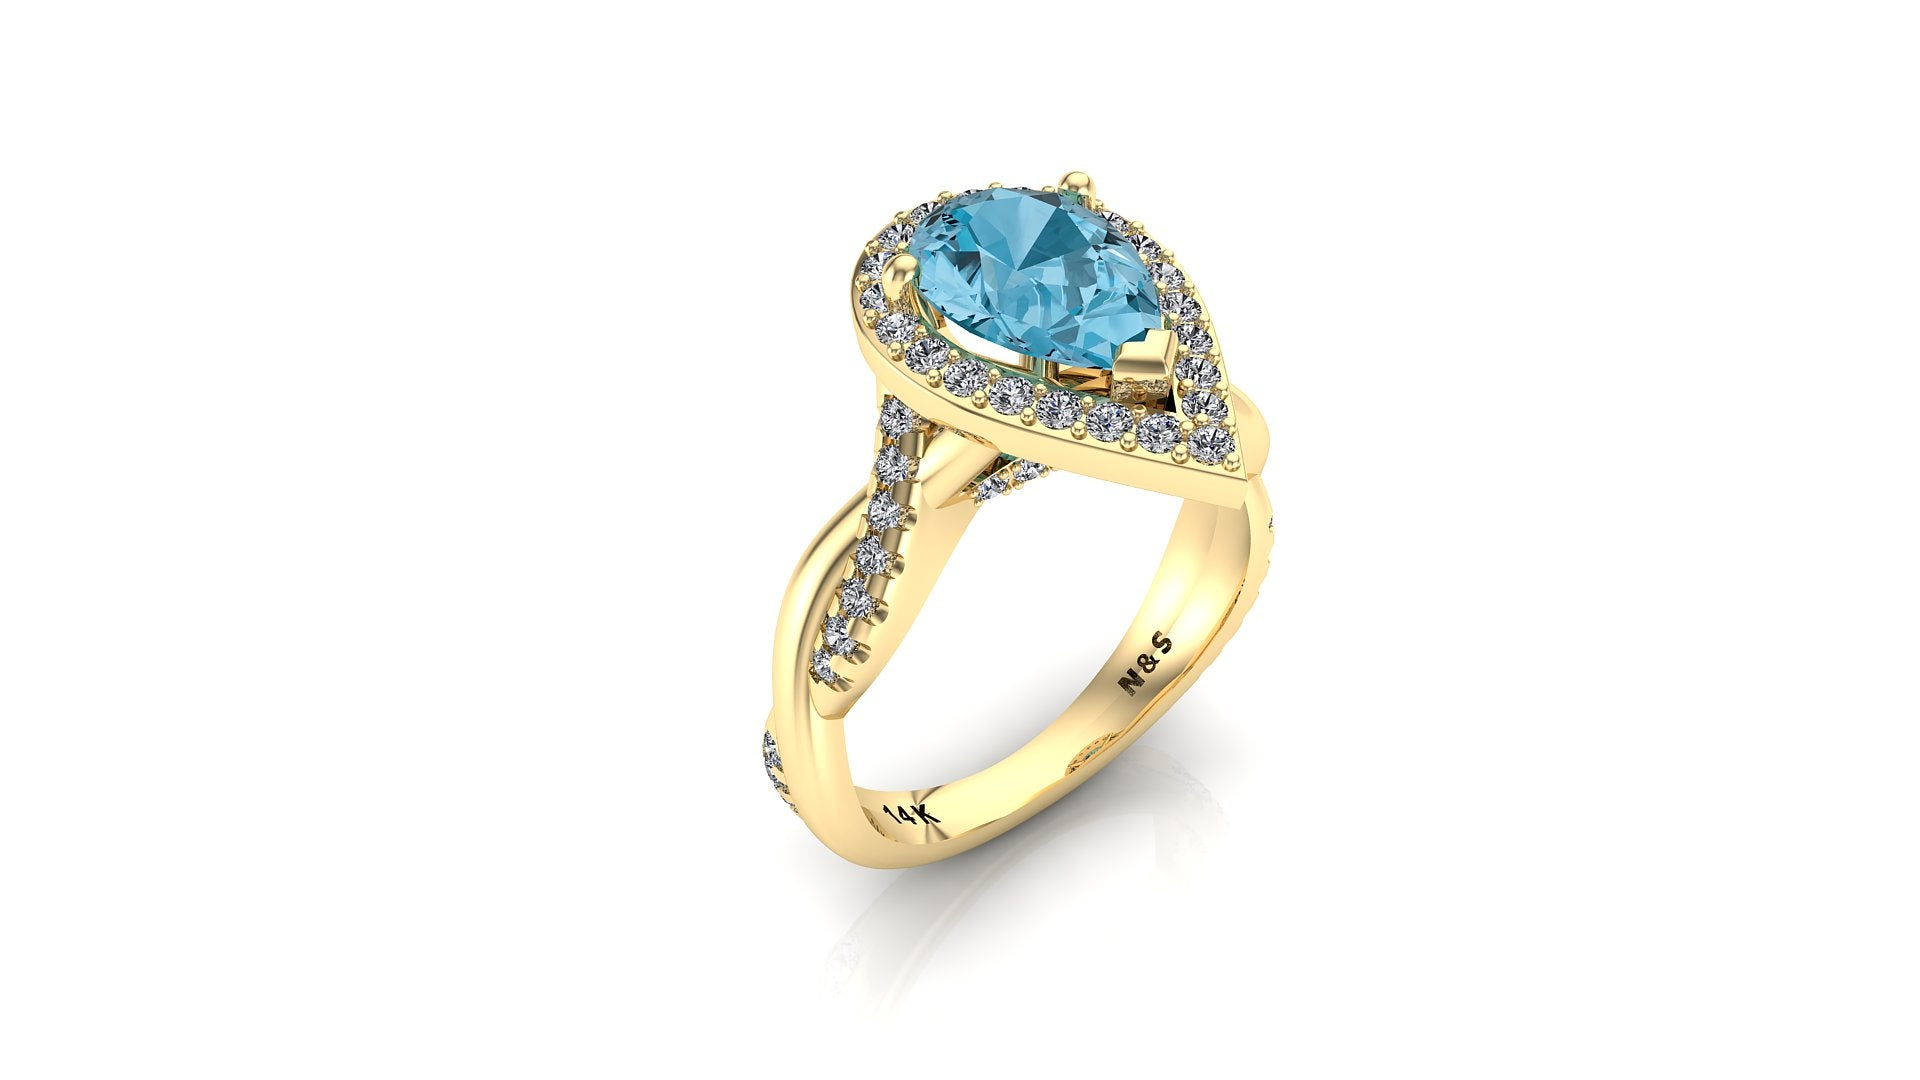 10x7mm (1.80ct) Single Diamond Twist Pear Cut Blue Topaz Diamond Halo 14K Gold Ring BSAQ017